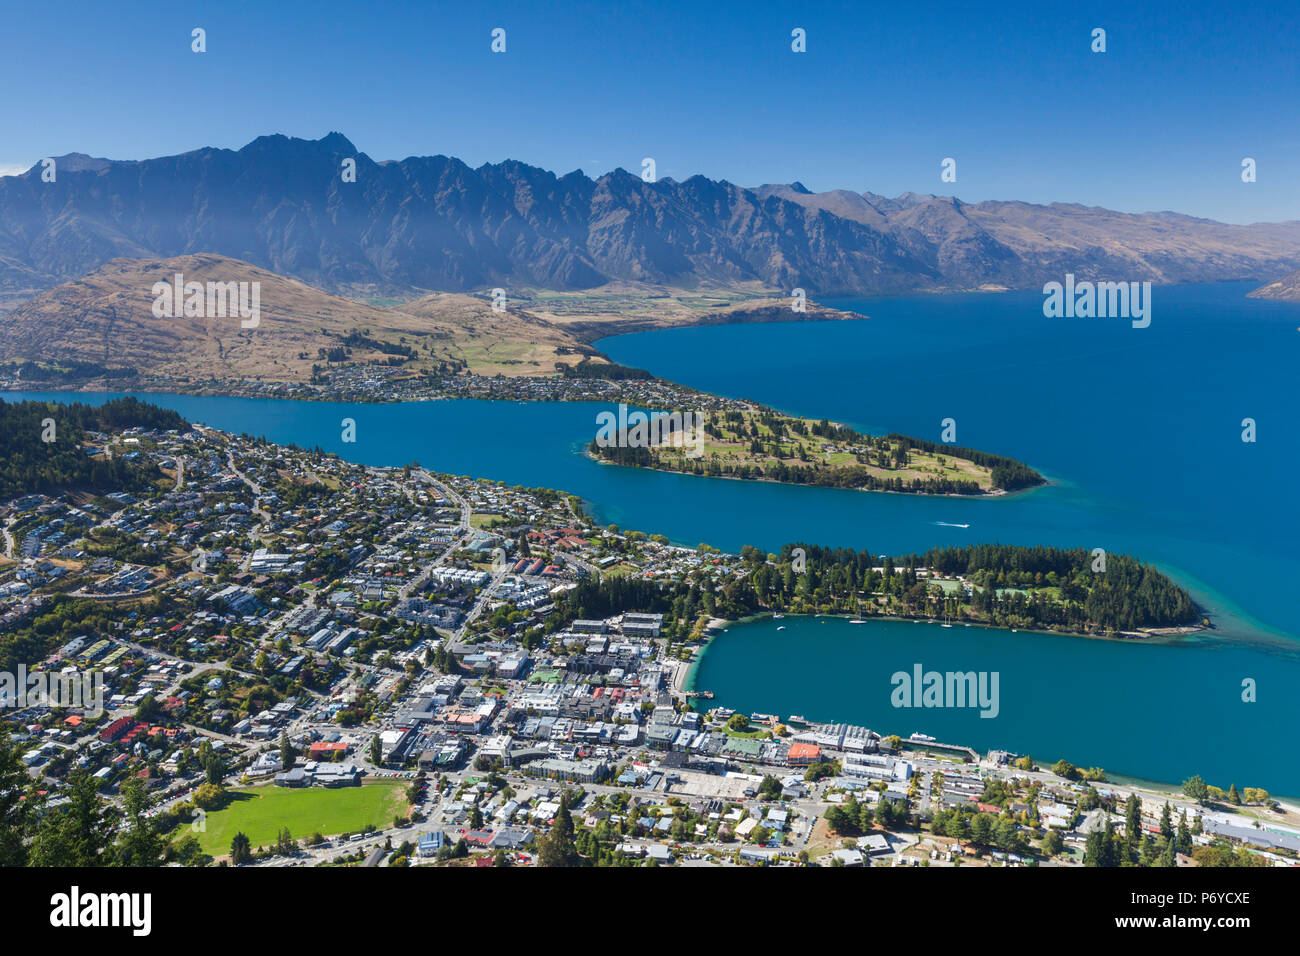 New Zealand, South Island, Otago, Queenstown, elevated town view from the Skyline Gondola deck - Stock Image